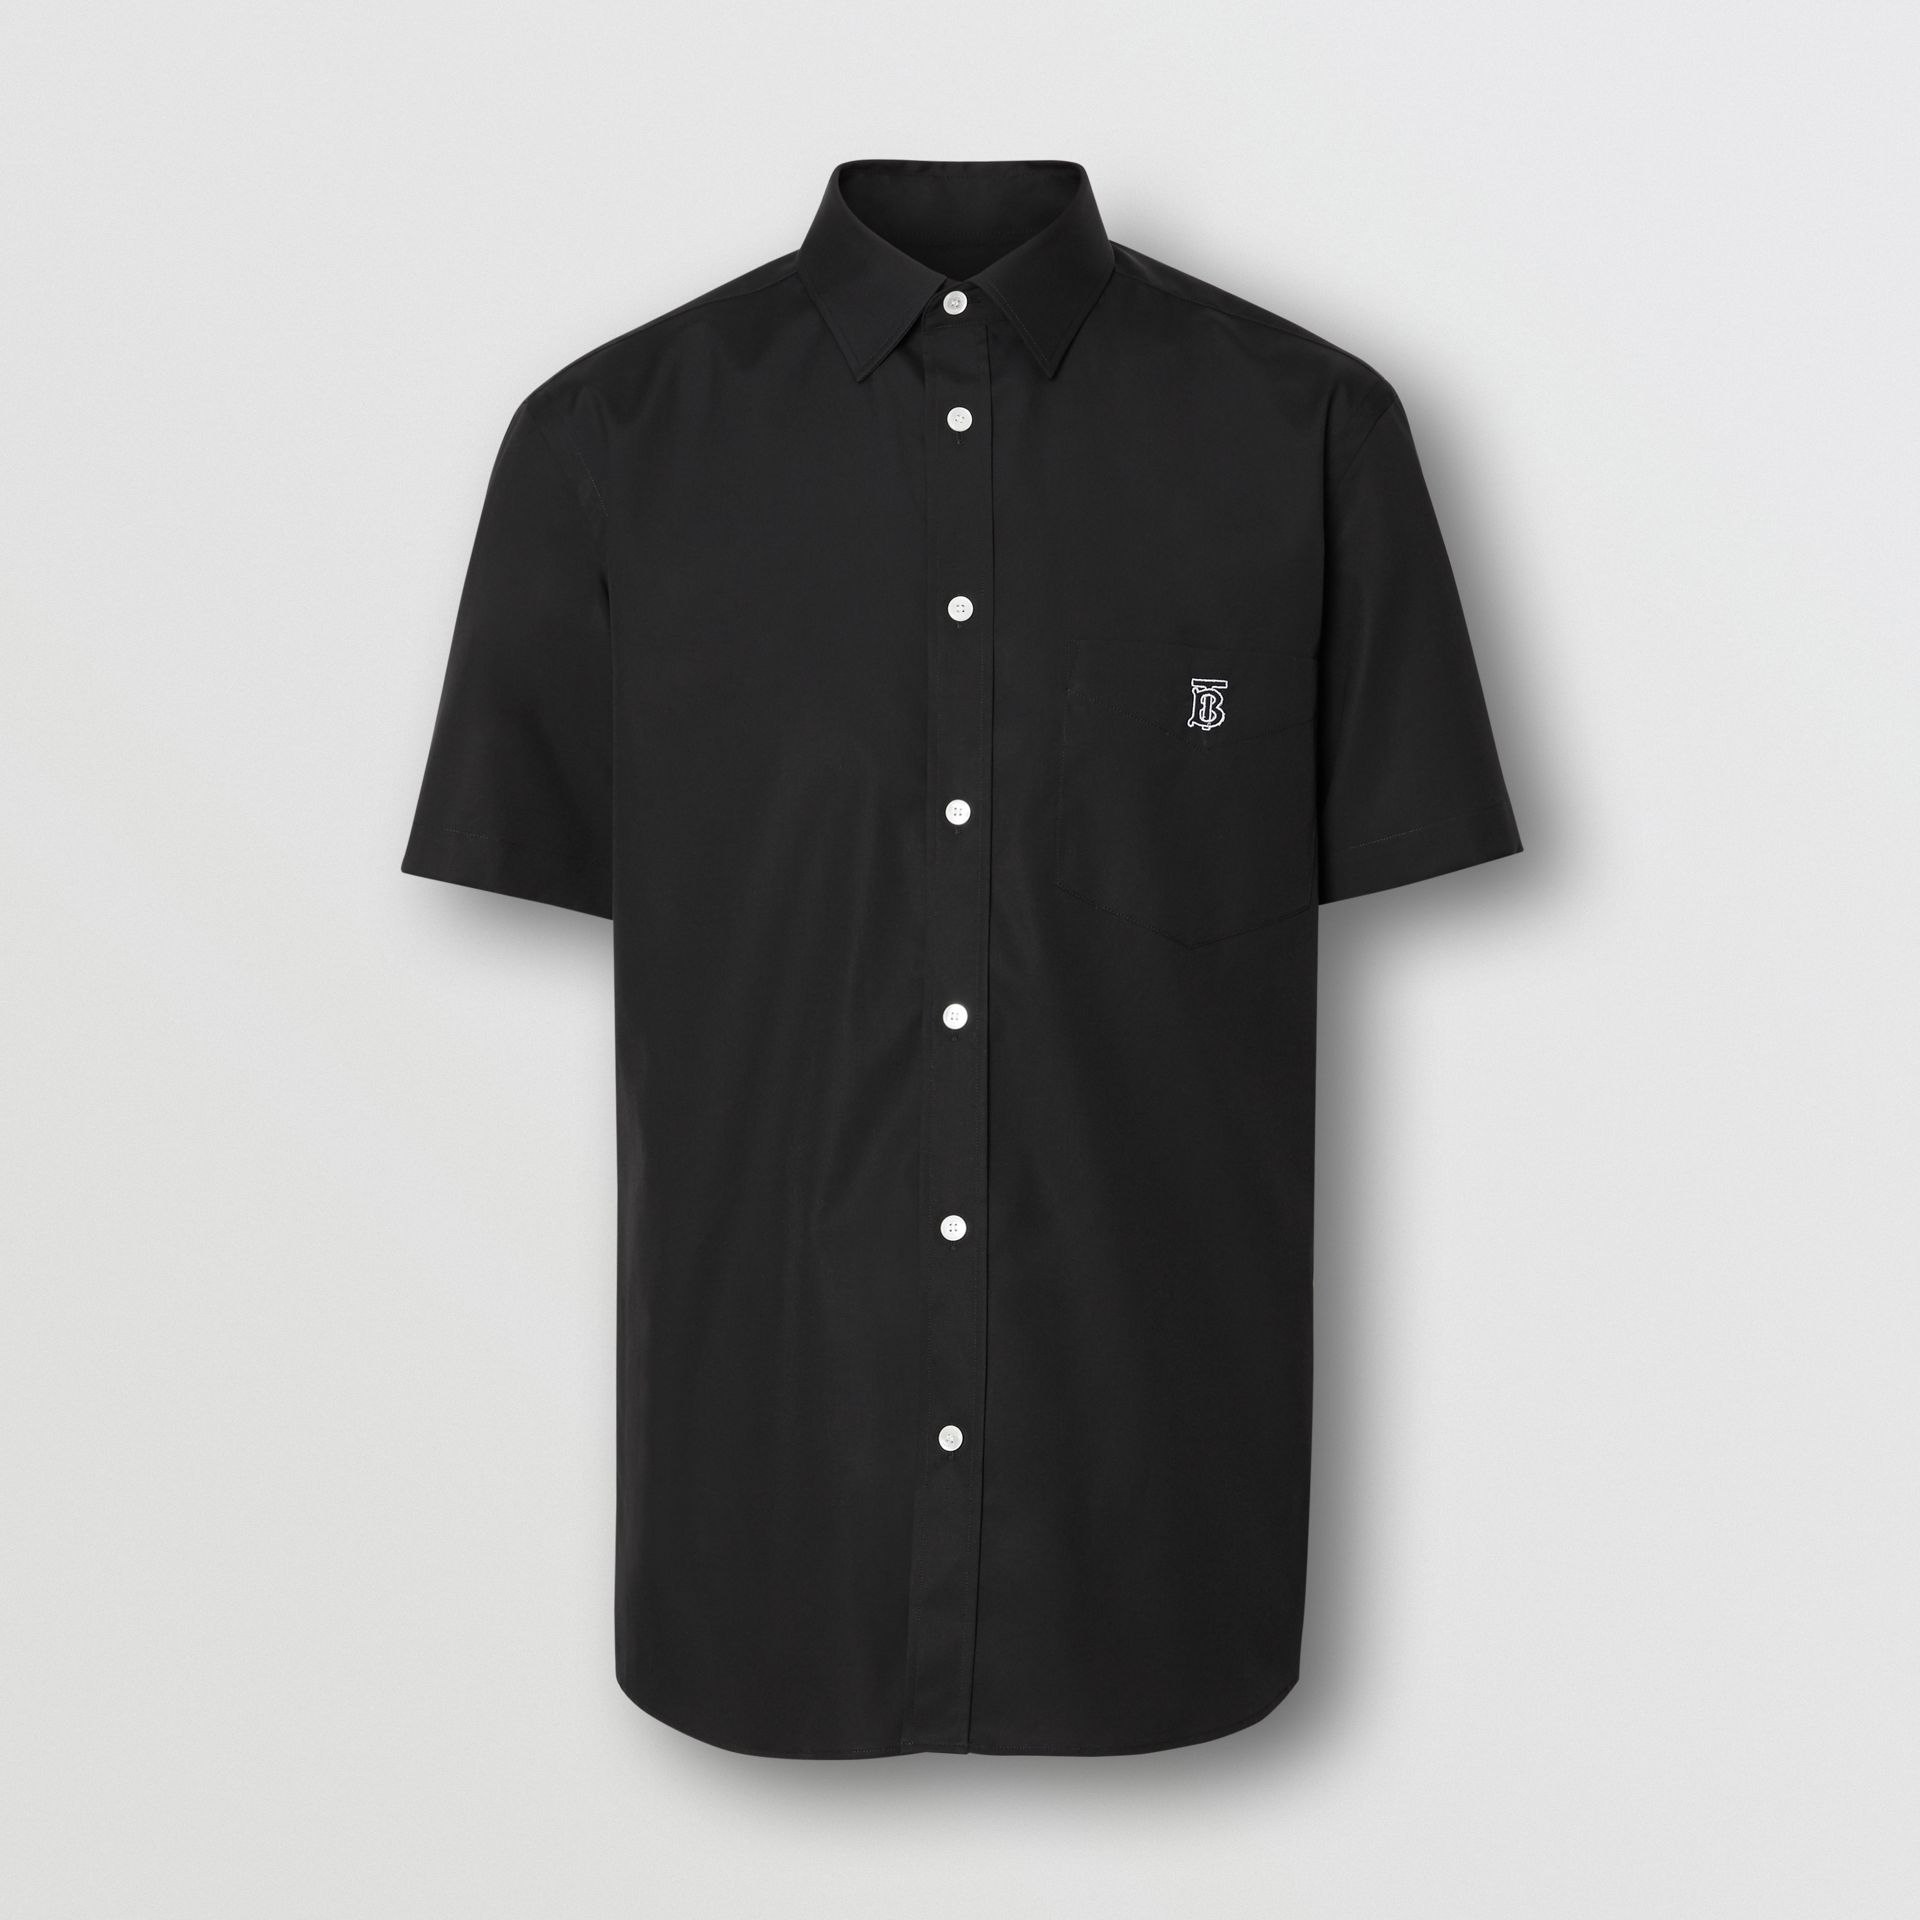 Short-sleeve Monogram Motif Stretch Cotton Shirt in Black - Men | Burberry Singapore - gallery image 3